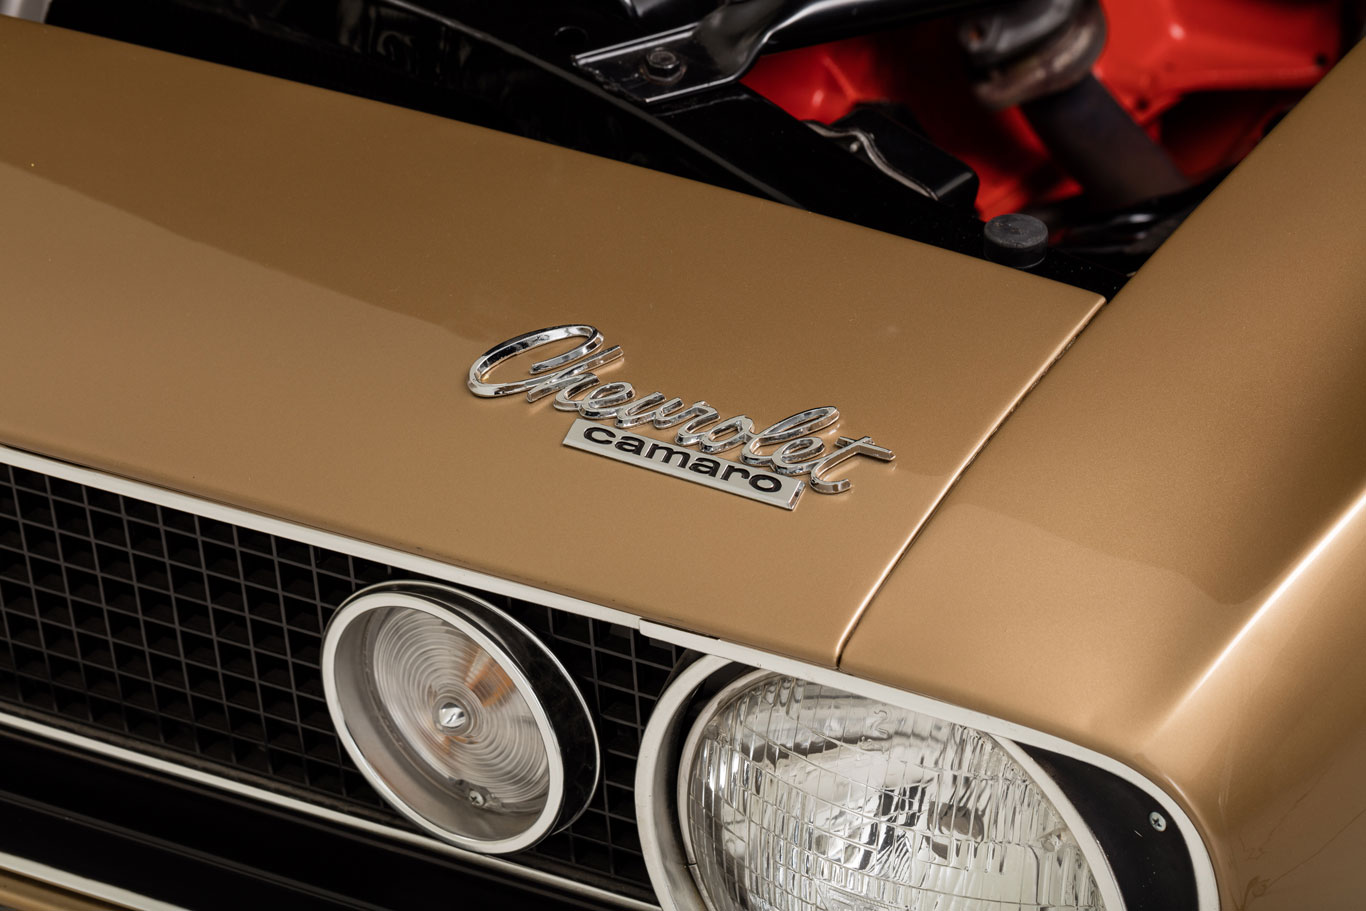 The exterior is Granada Gold. Chevrolet did not finalize the Camaro model name until very late in the game.